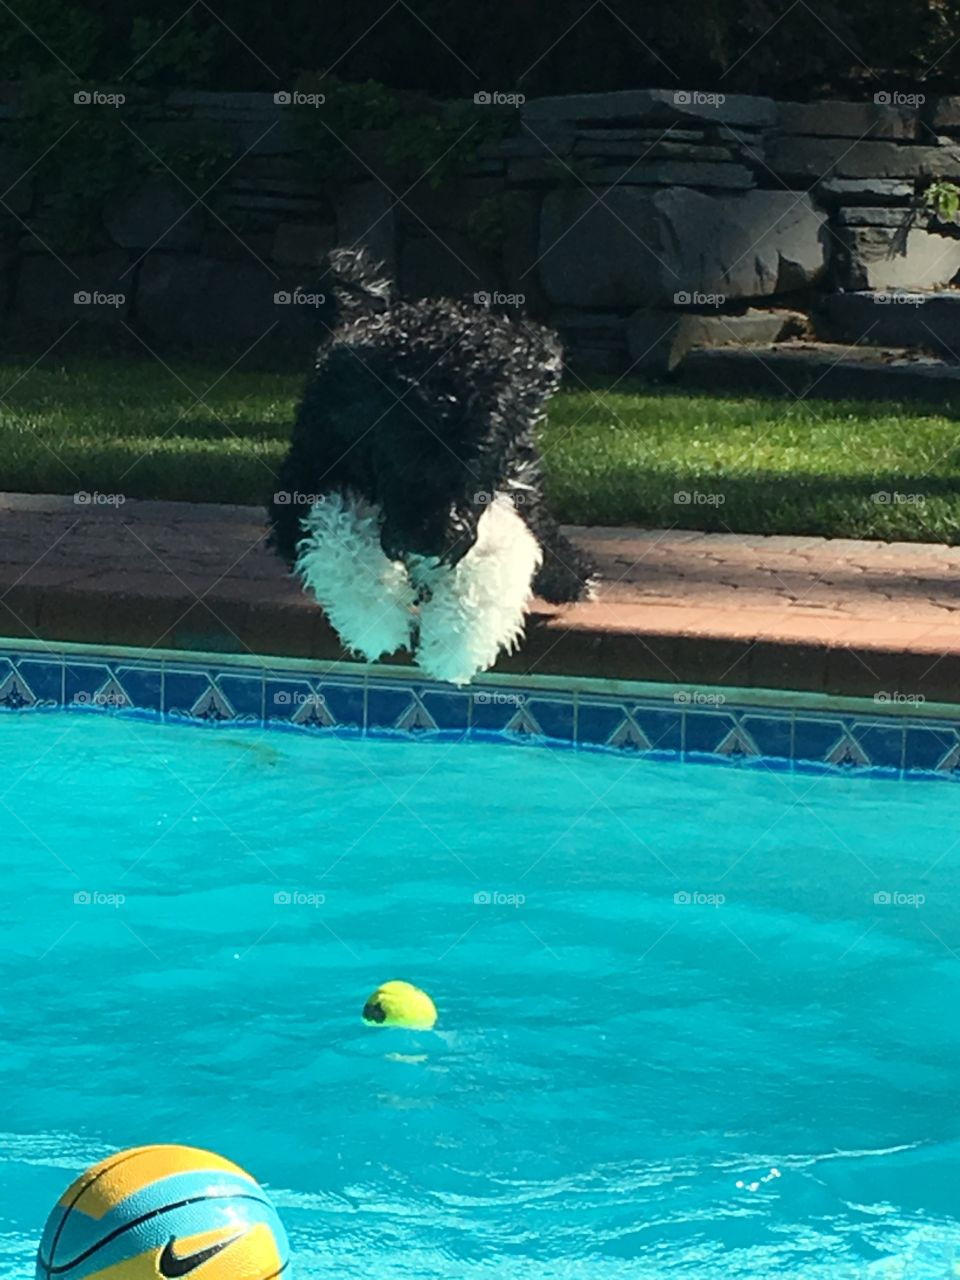 Furry puppy jumping in water Portuguese water dog